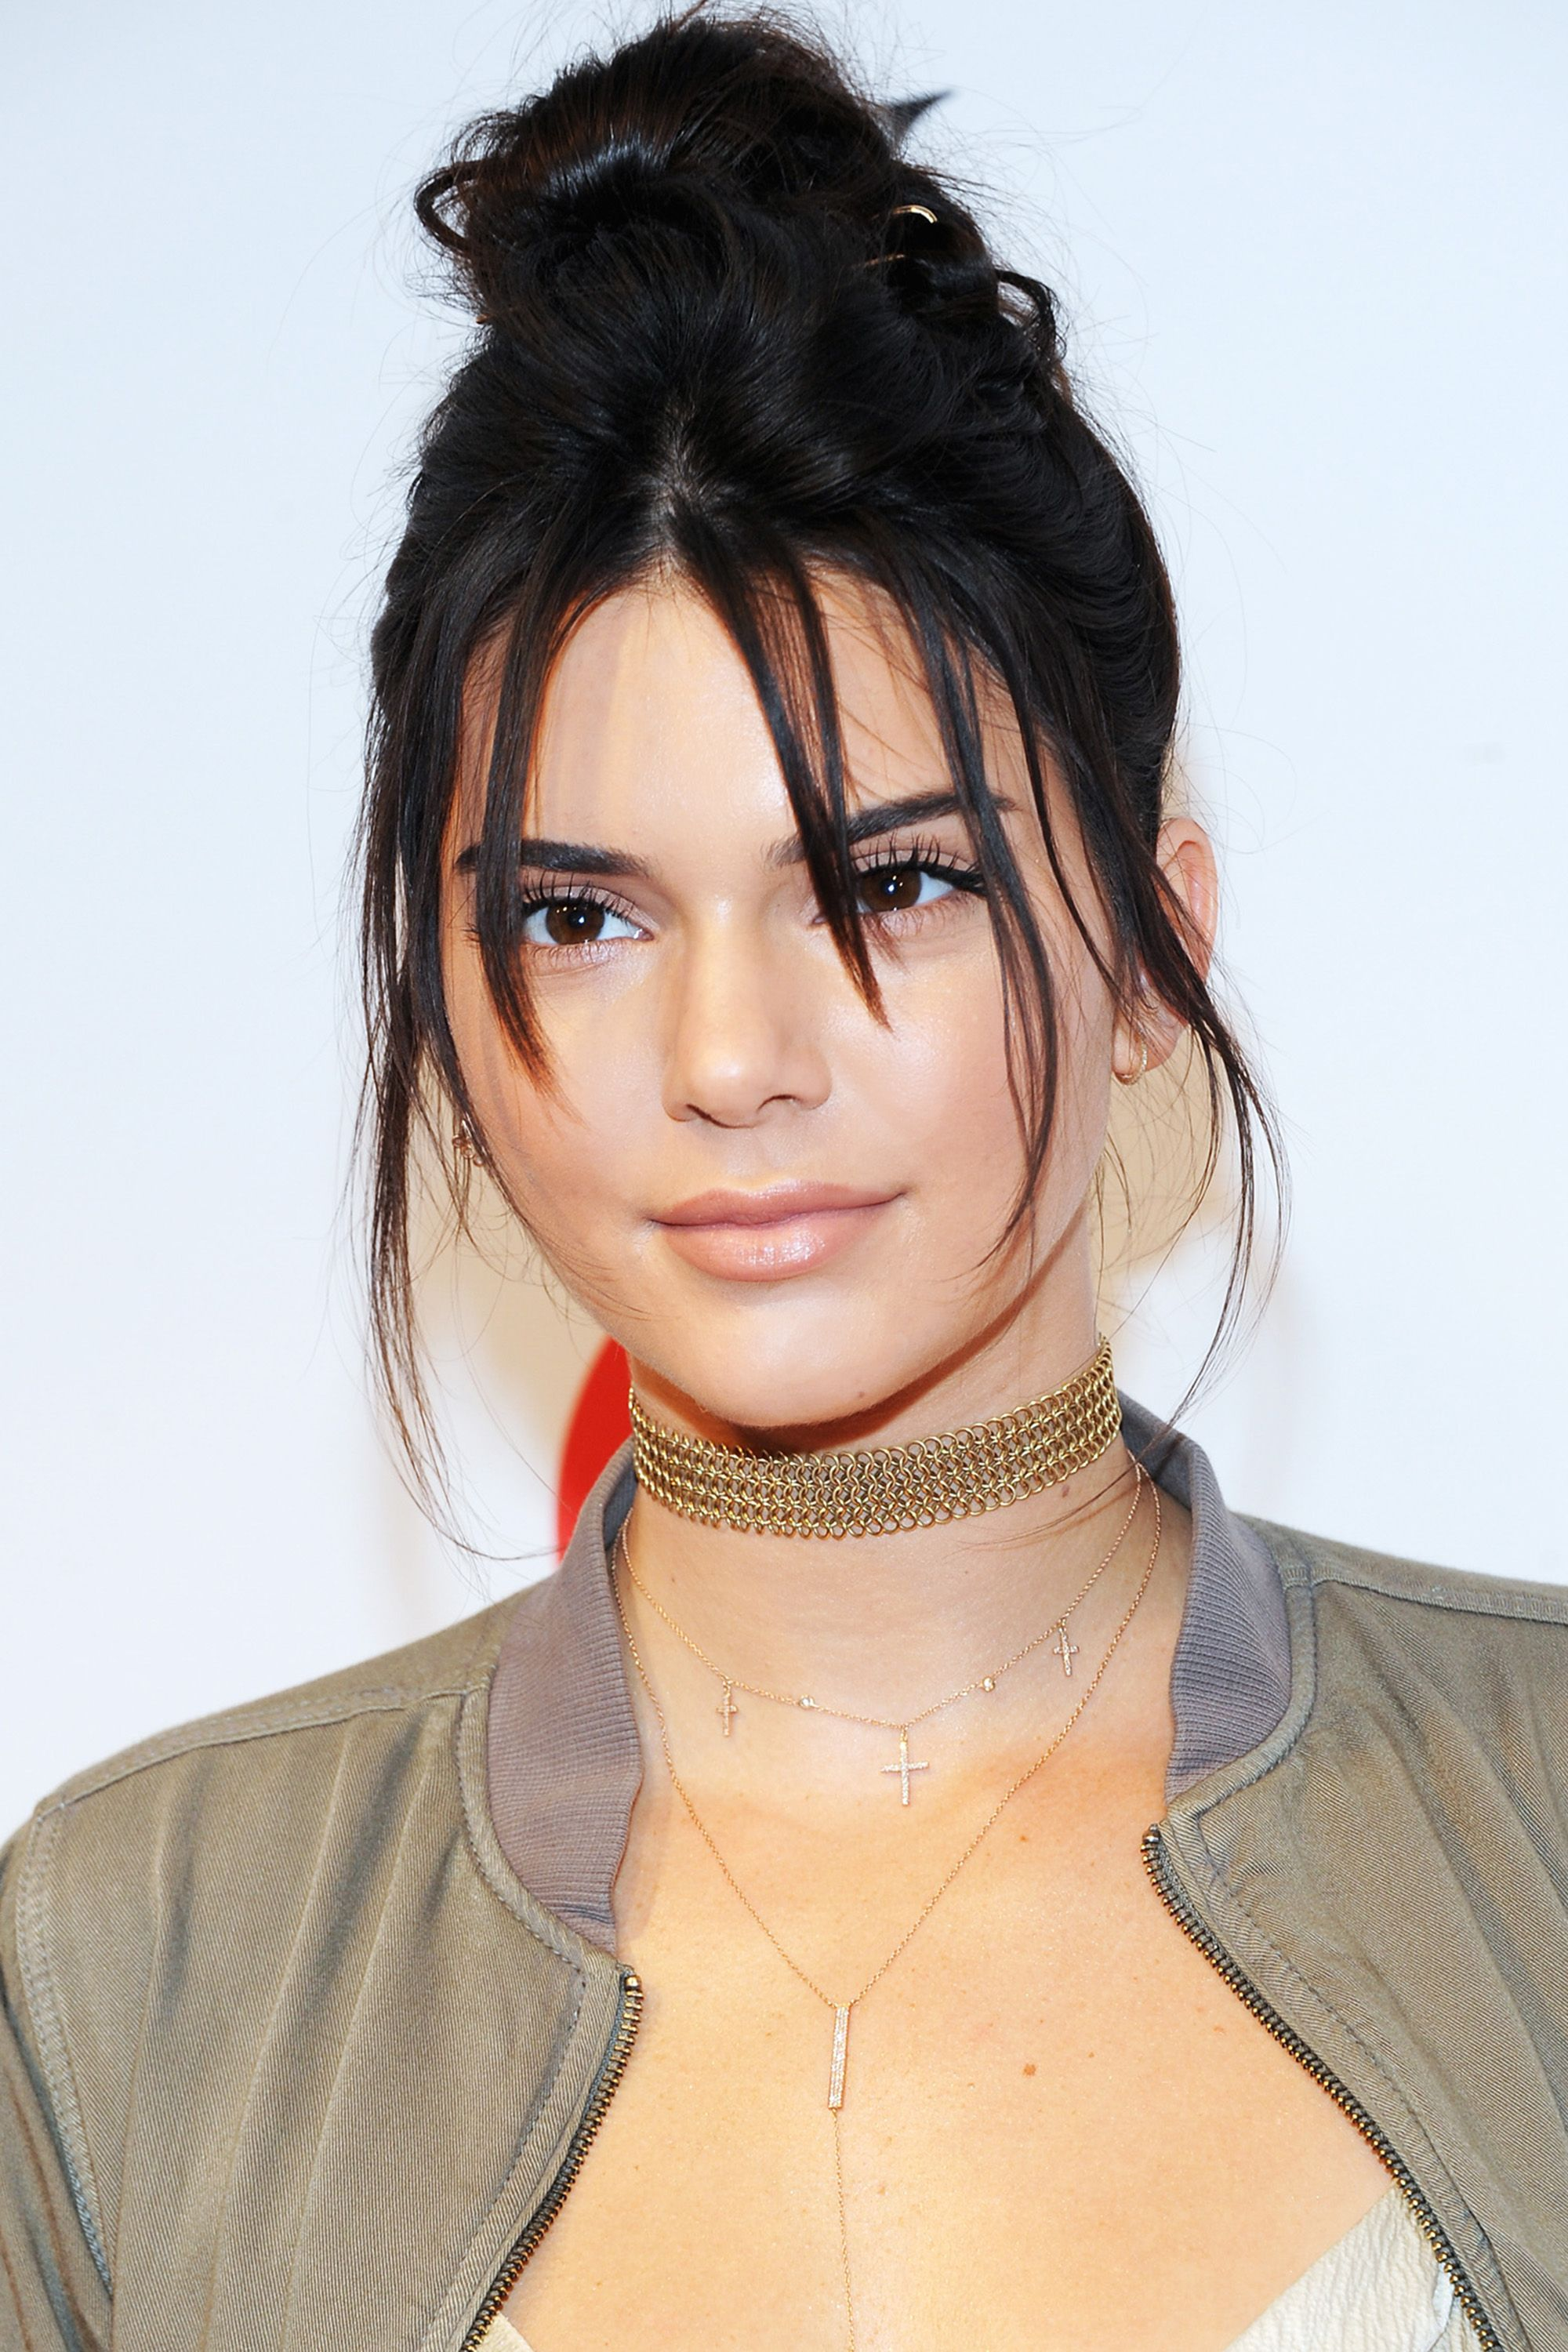 "<p><strong data-redactor-tag=""strong"">Who:</strong> Kendall Jenner</p><p><strong data-redactor-tag=""strong"">What: </strong>No Fuss Top Knot</p><p><strong data-redactor-tag=""strong"">Why: </strong>We've all had haircuts that look better down than up. At the Target + IMG NYFW kick-off event last night in New York City, Jenner didn't let long layers stop her. Which is informative for the rest of us: Even if they're in your eyes, or along your cheeks, piecey bits can lend low-key edge to simple styles.</p><p><strong data-redactor-tag=""strong"">Editor's Pick: </strong><strong data-redactor-tag=""strong"">Down & Out</strong> Dirty Spray, $29, <a href=""http://www.sephora.com/down-out-dirty-spray-P410496?skuId=1839570&icid2=products%20grid:p410496"">sephora.com</a>. </p>"